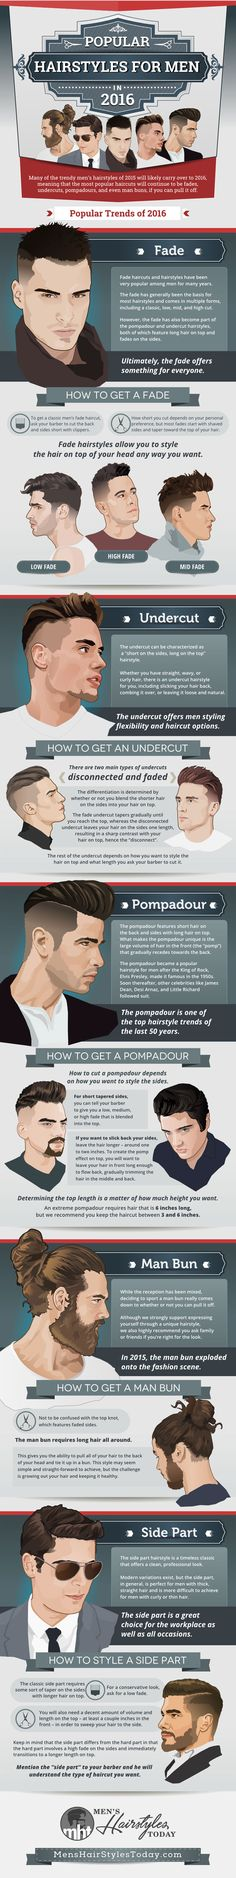 Top Men's Hairstyles In 2016